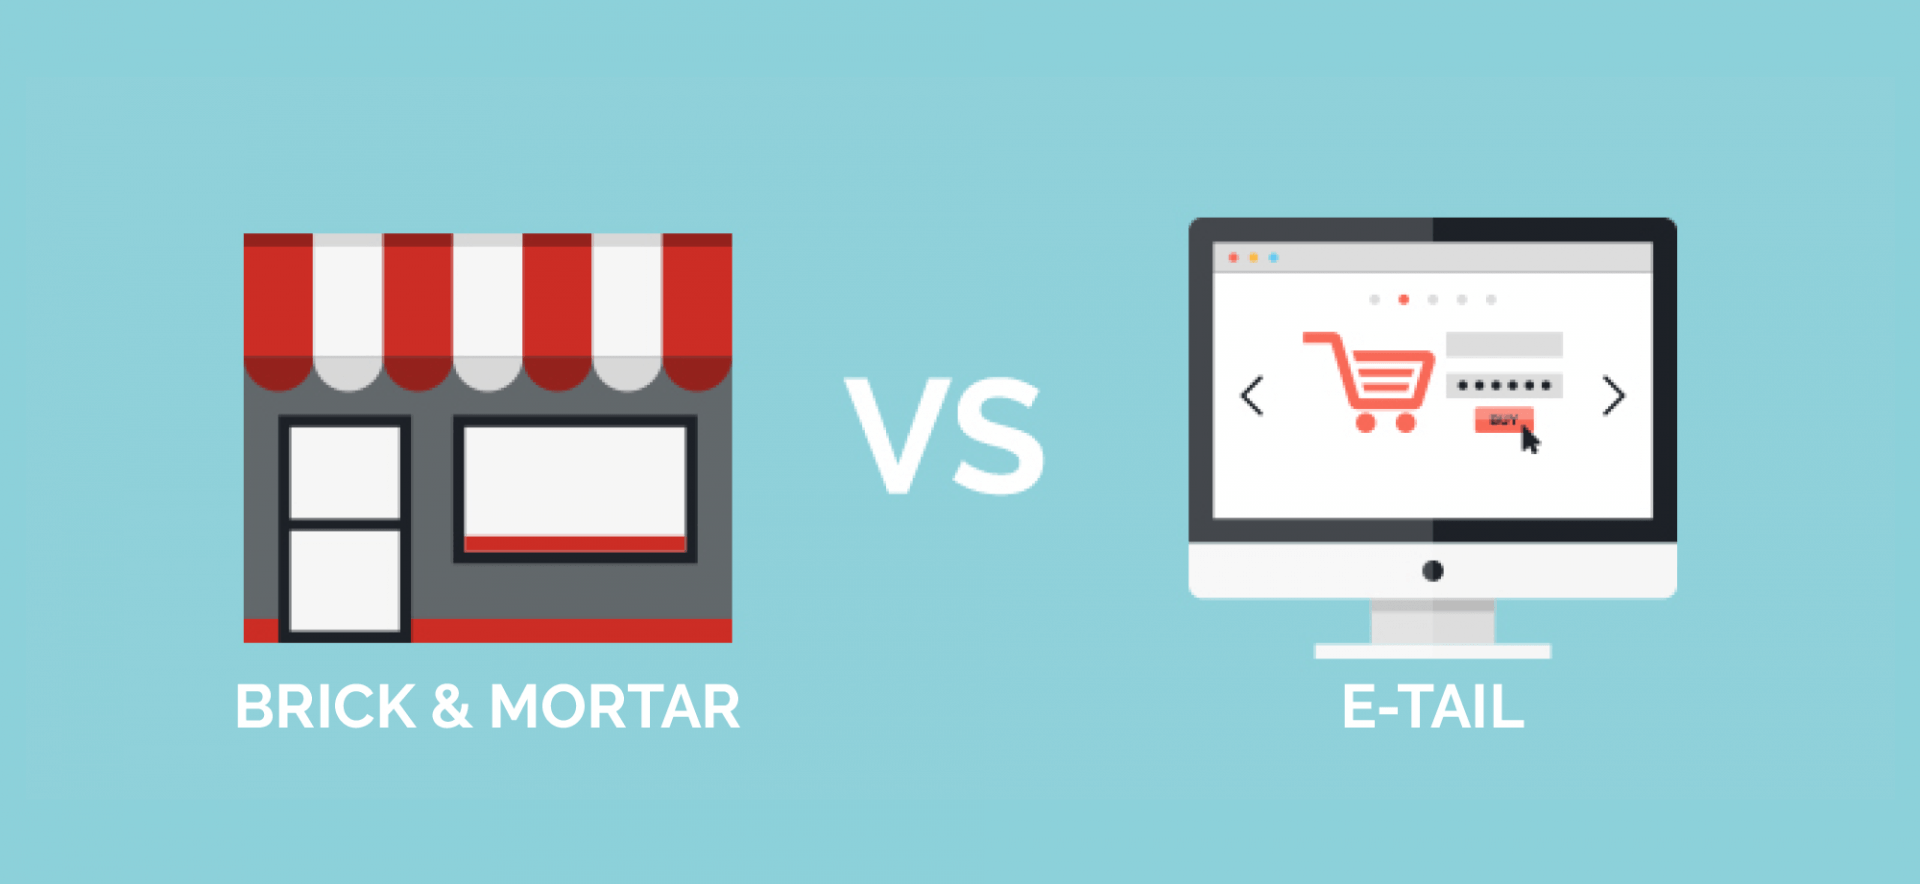 Brick & Mortar Retailers vs eTail Giants: Graphic